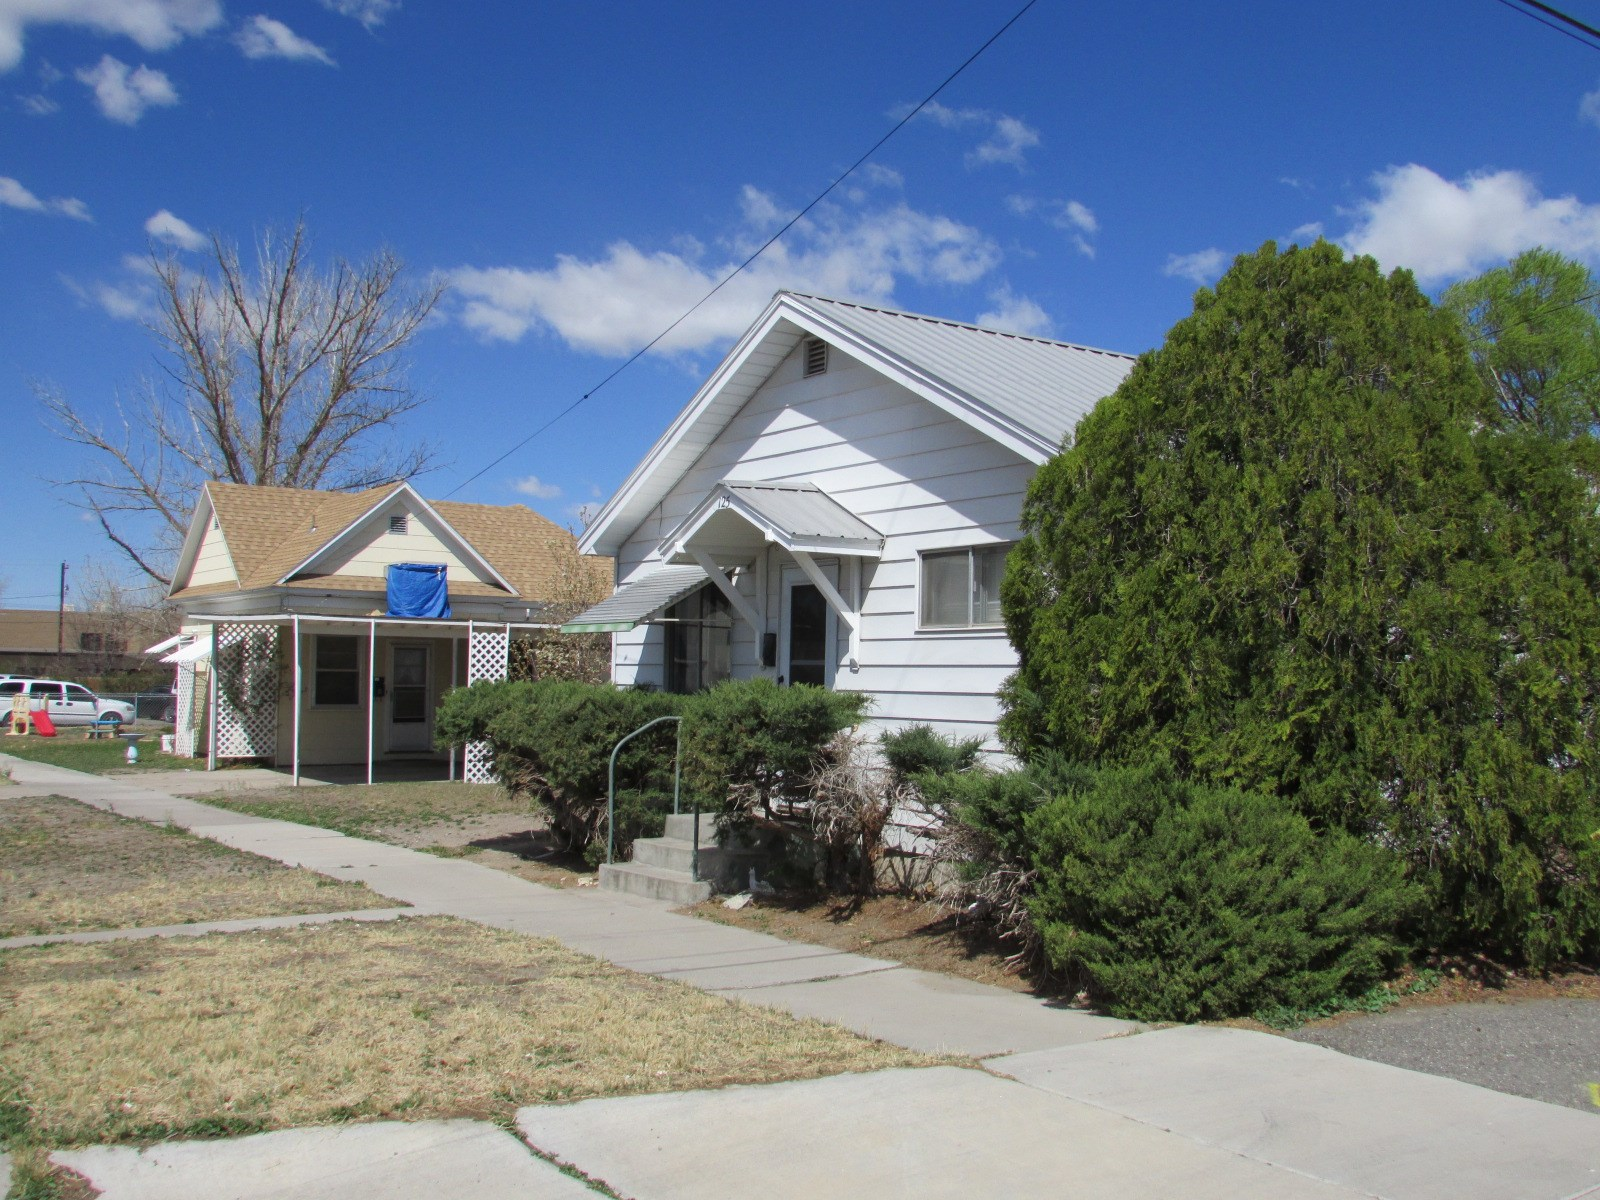 Home For Sale In Town Delta, Colorado